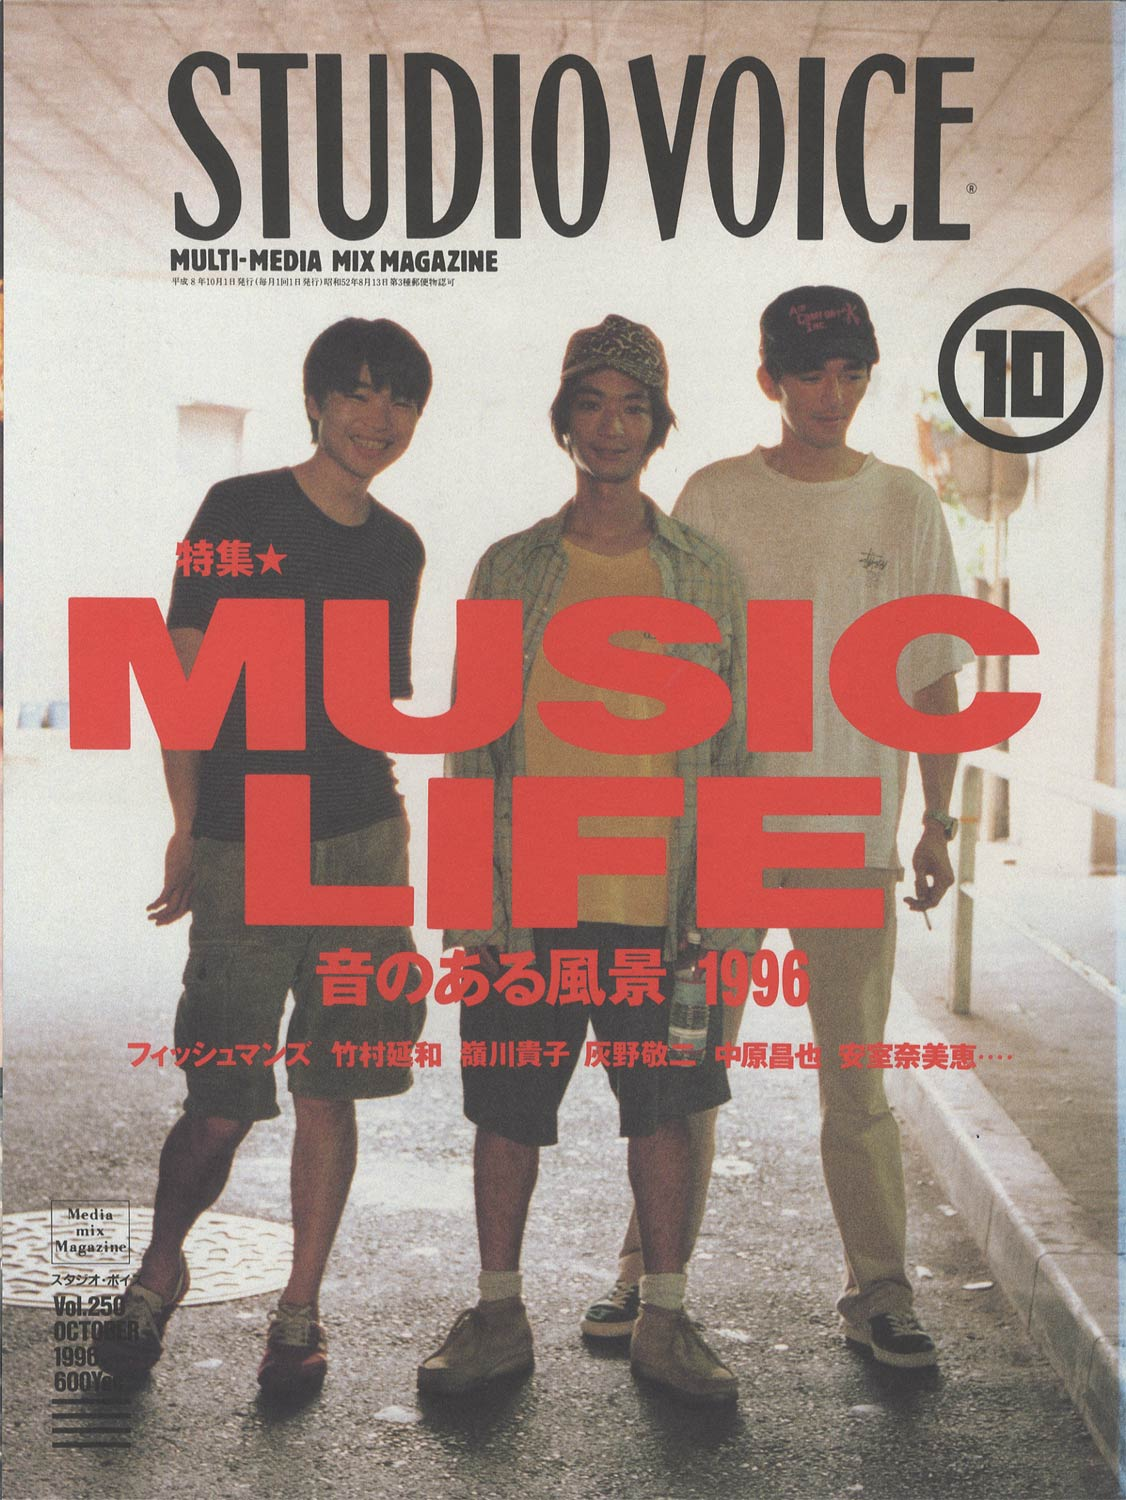 STUDIO VOICE MULTI-MEDIA MIX MAGAZINE/スタジオ・ボイス 1996年10月号 VOL.250